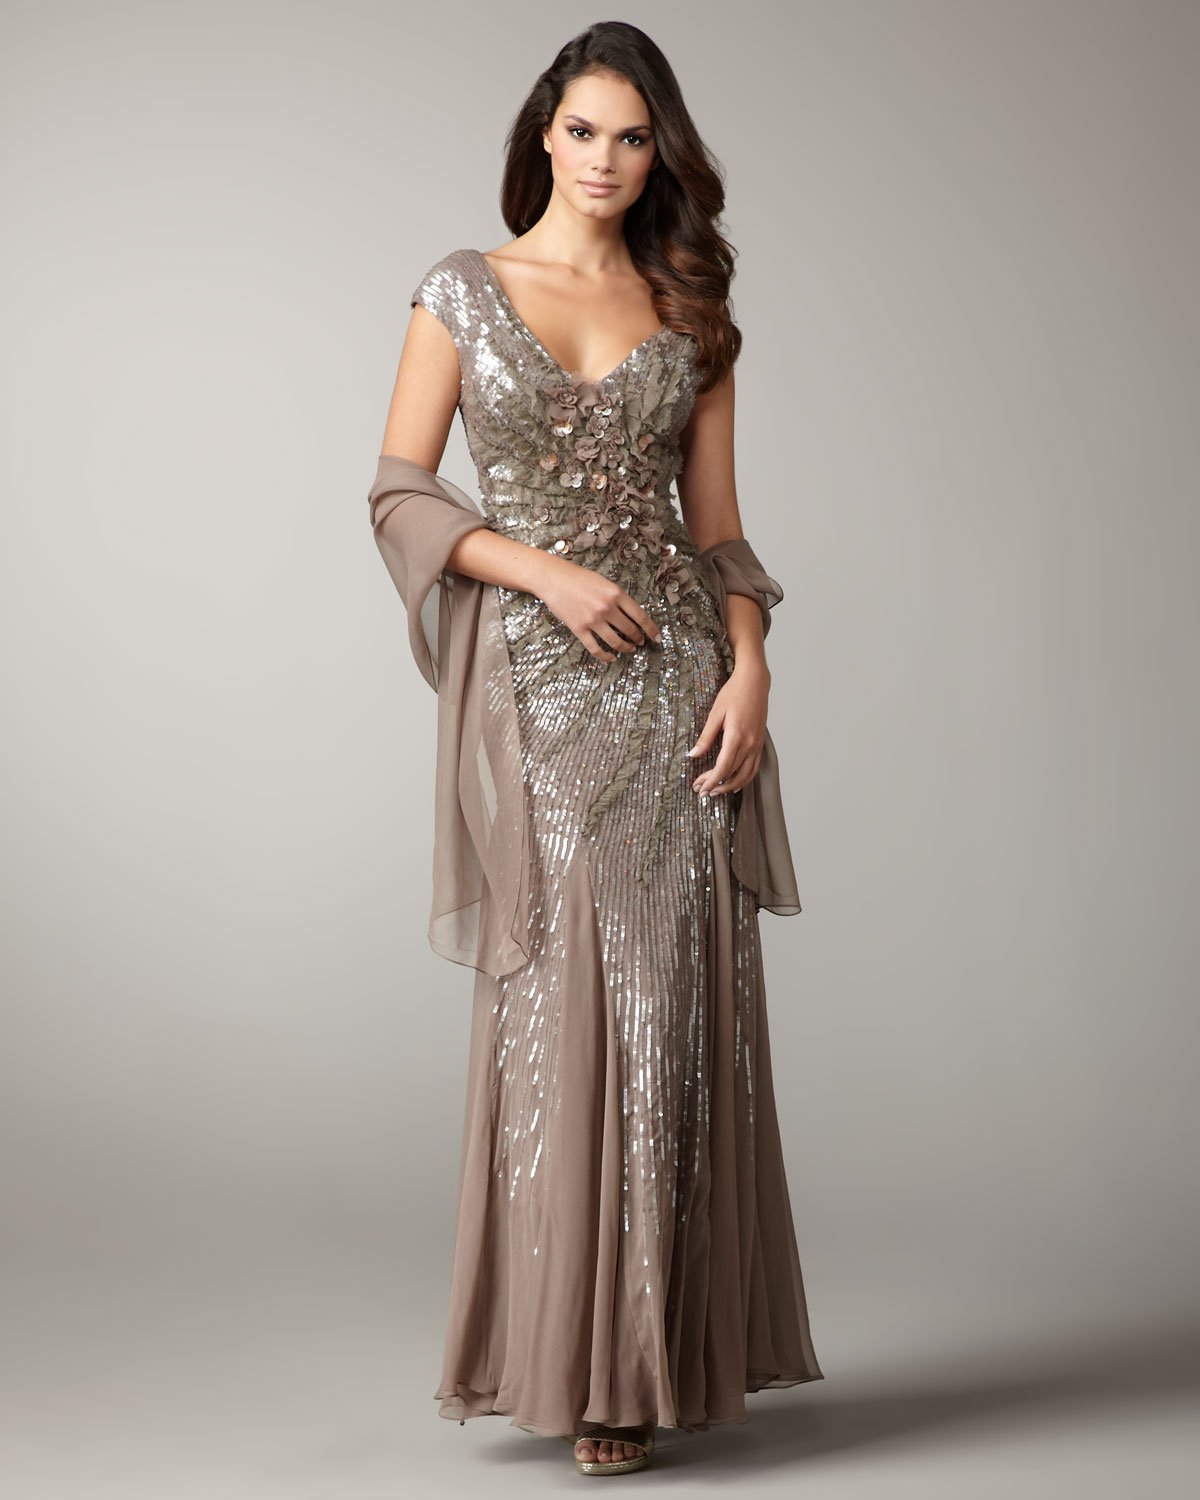 Gorgeous gowns for mother-of, events, and those special occasions.